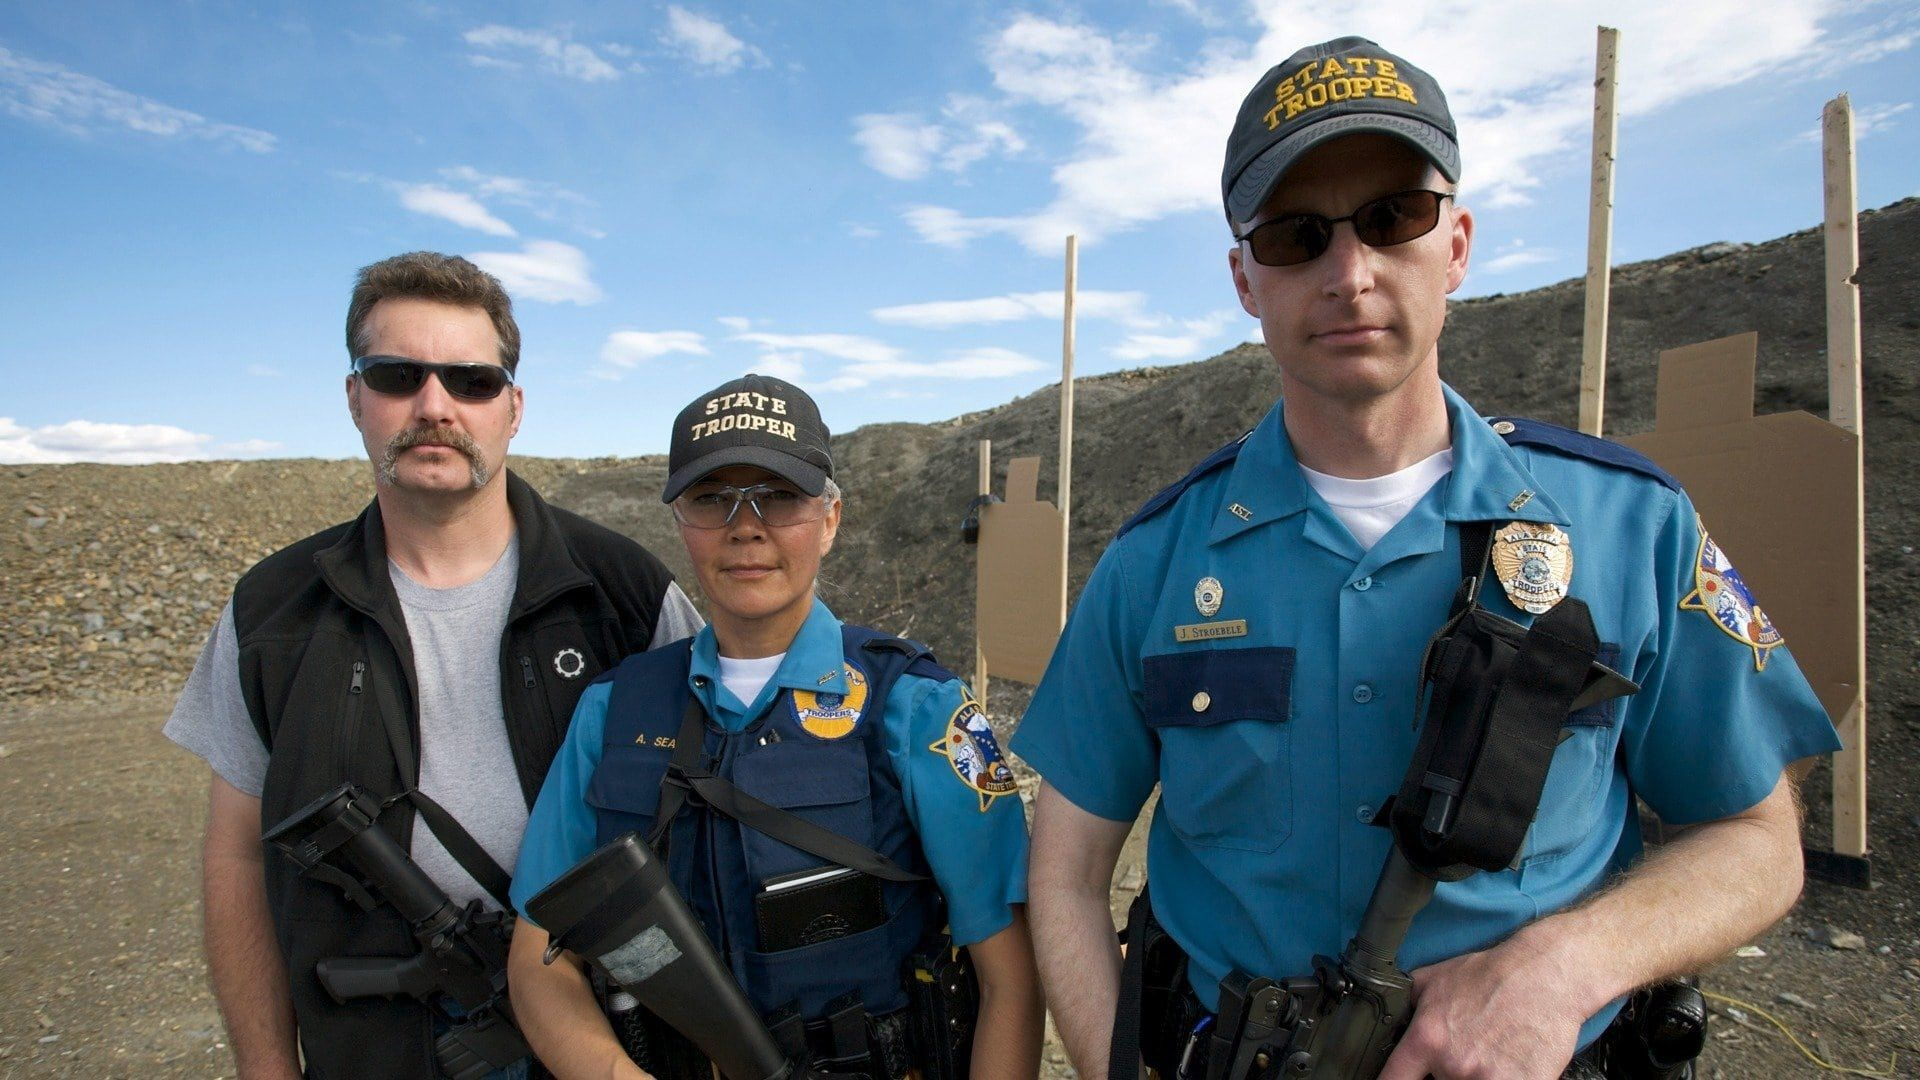 88b16e004df Alaska State Troopers - Watch Episodes on Netflix or Streaming ...